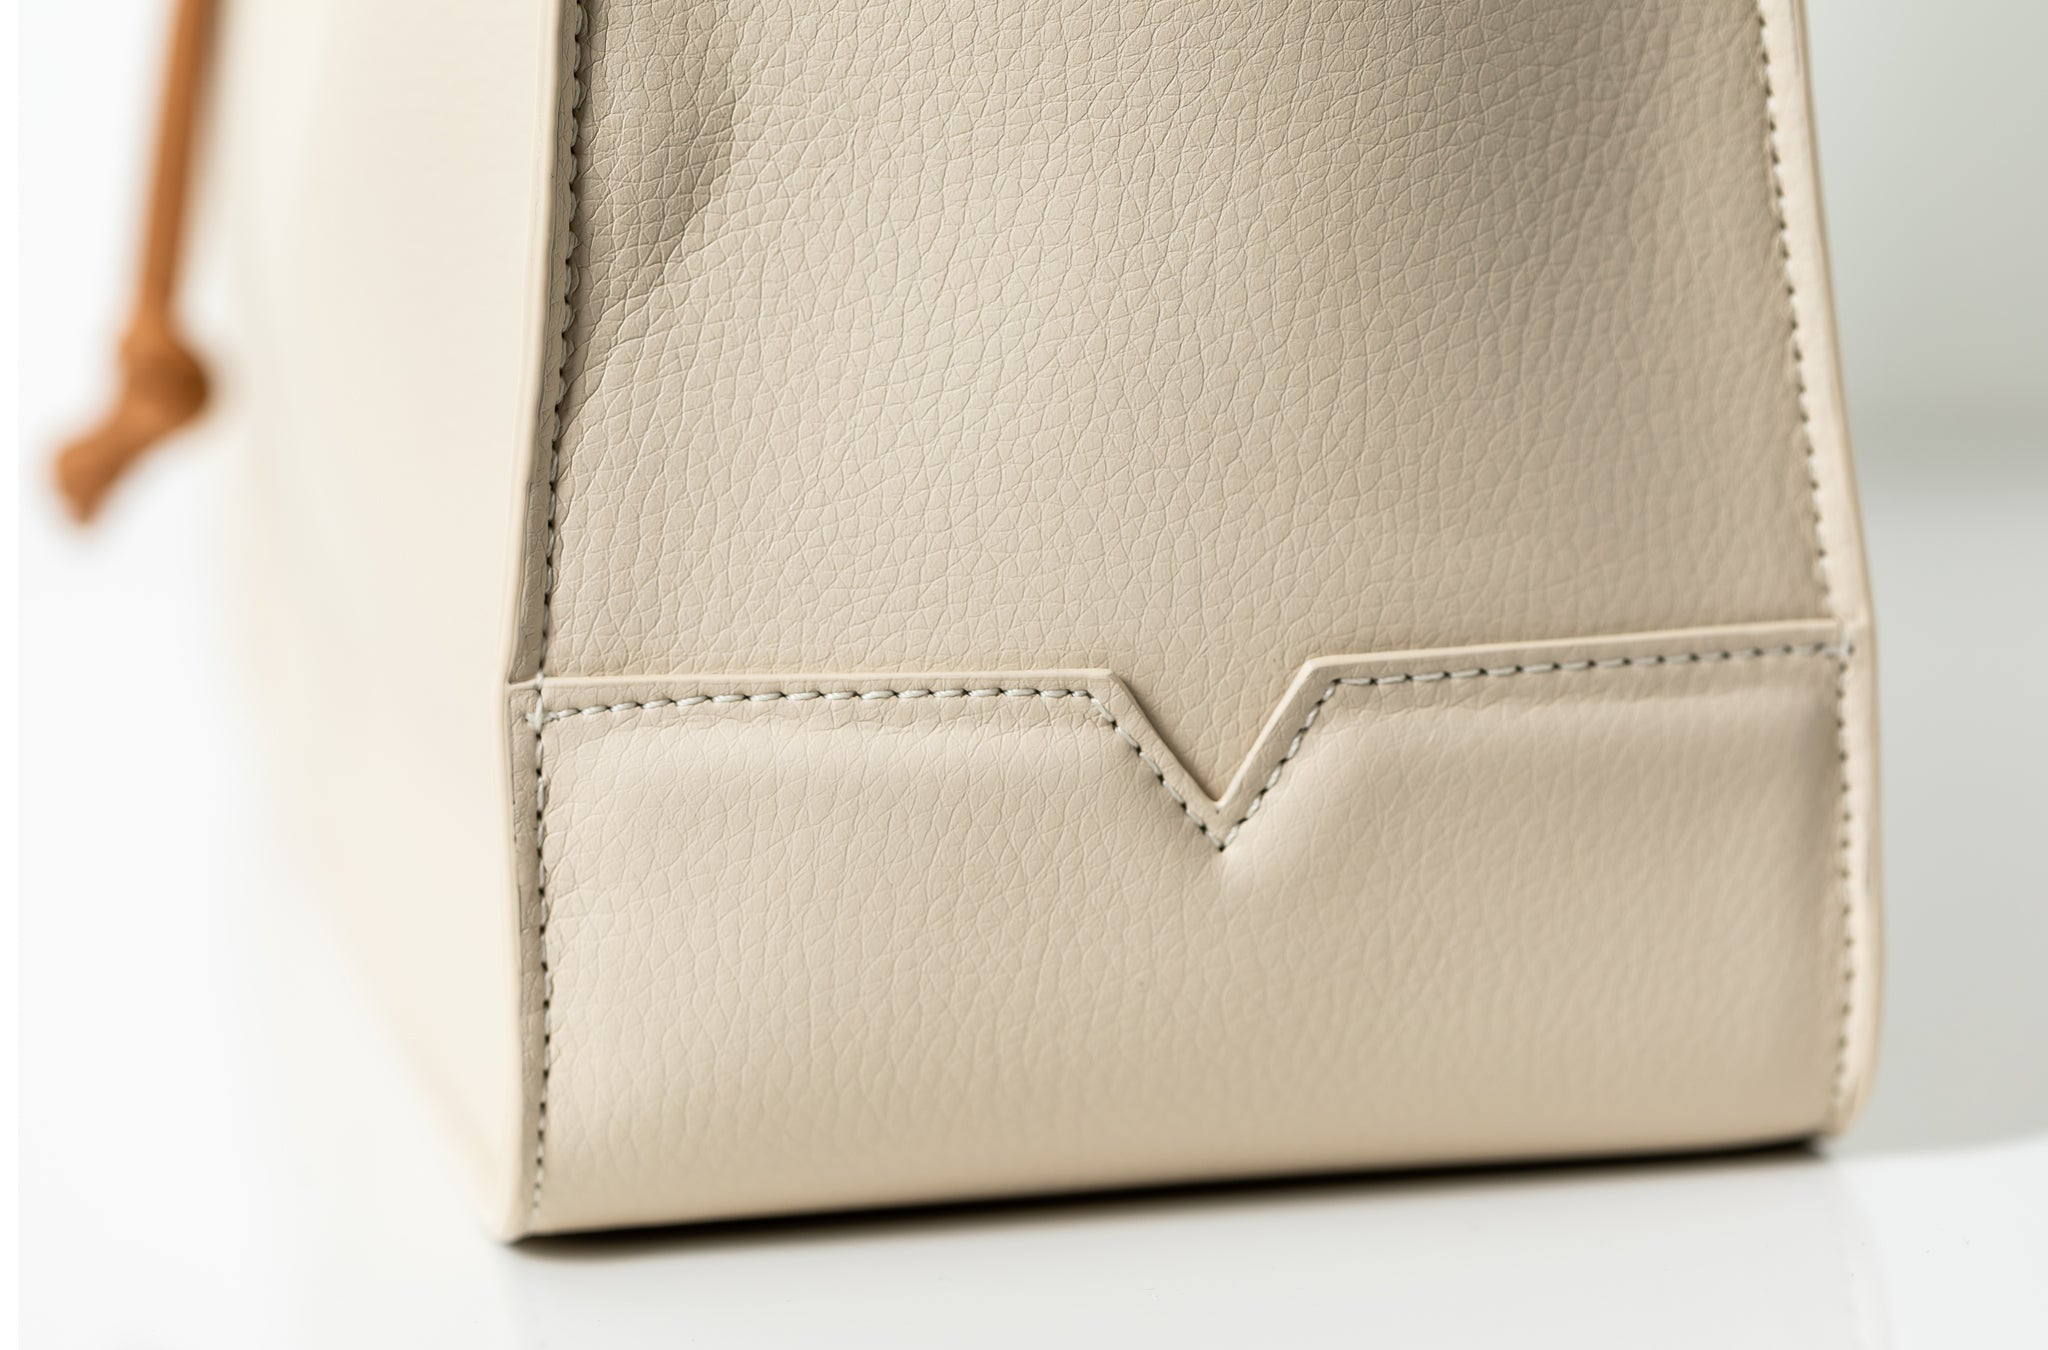 The Medium Shopper in Technik-Leather in Oat and Caramel